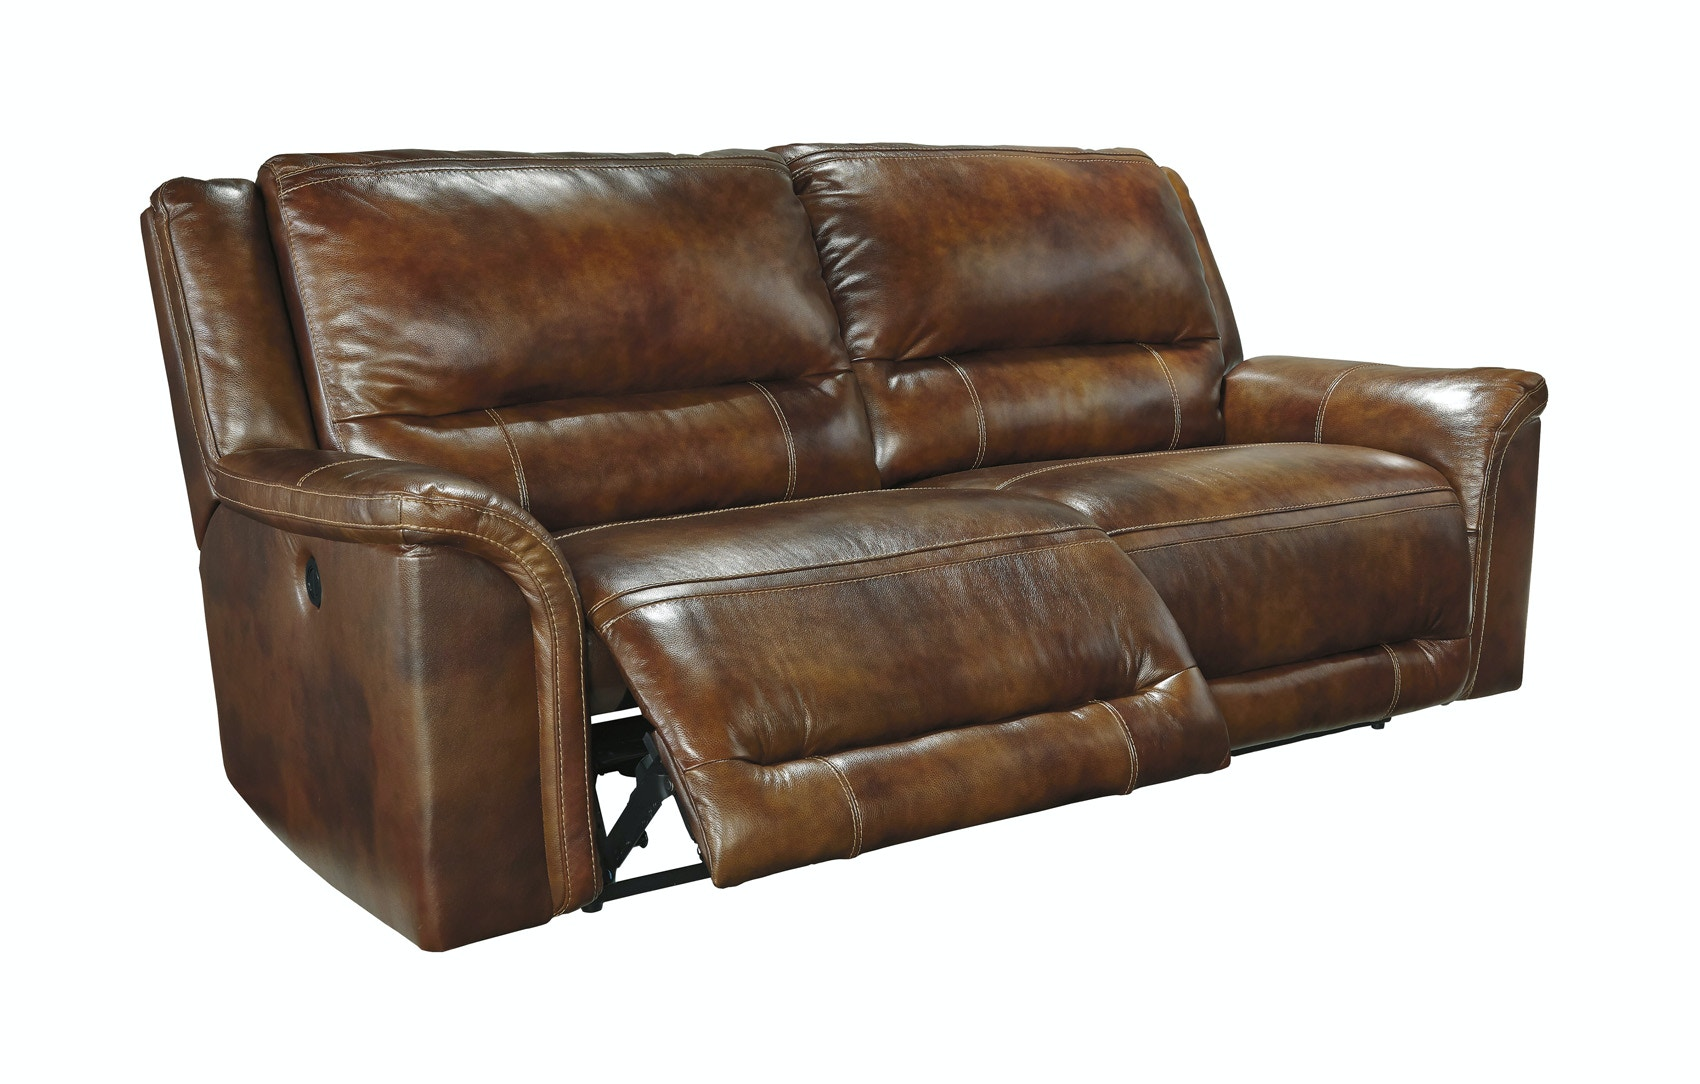 Signature Design by Ashley Living Room Jayron Power Reclining Sofa 051045 - Furniture Fair ...